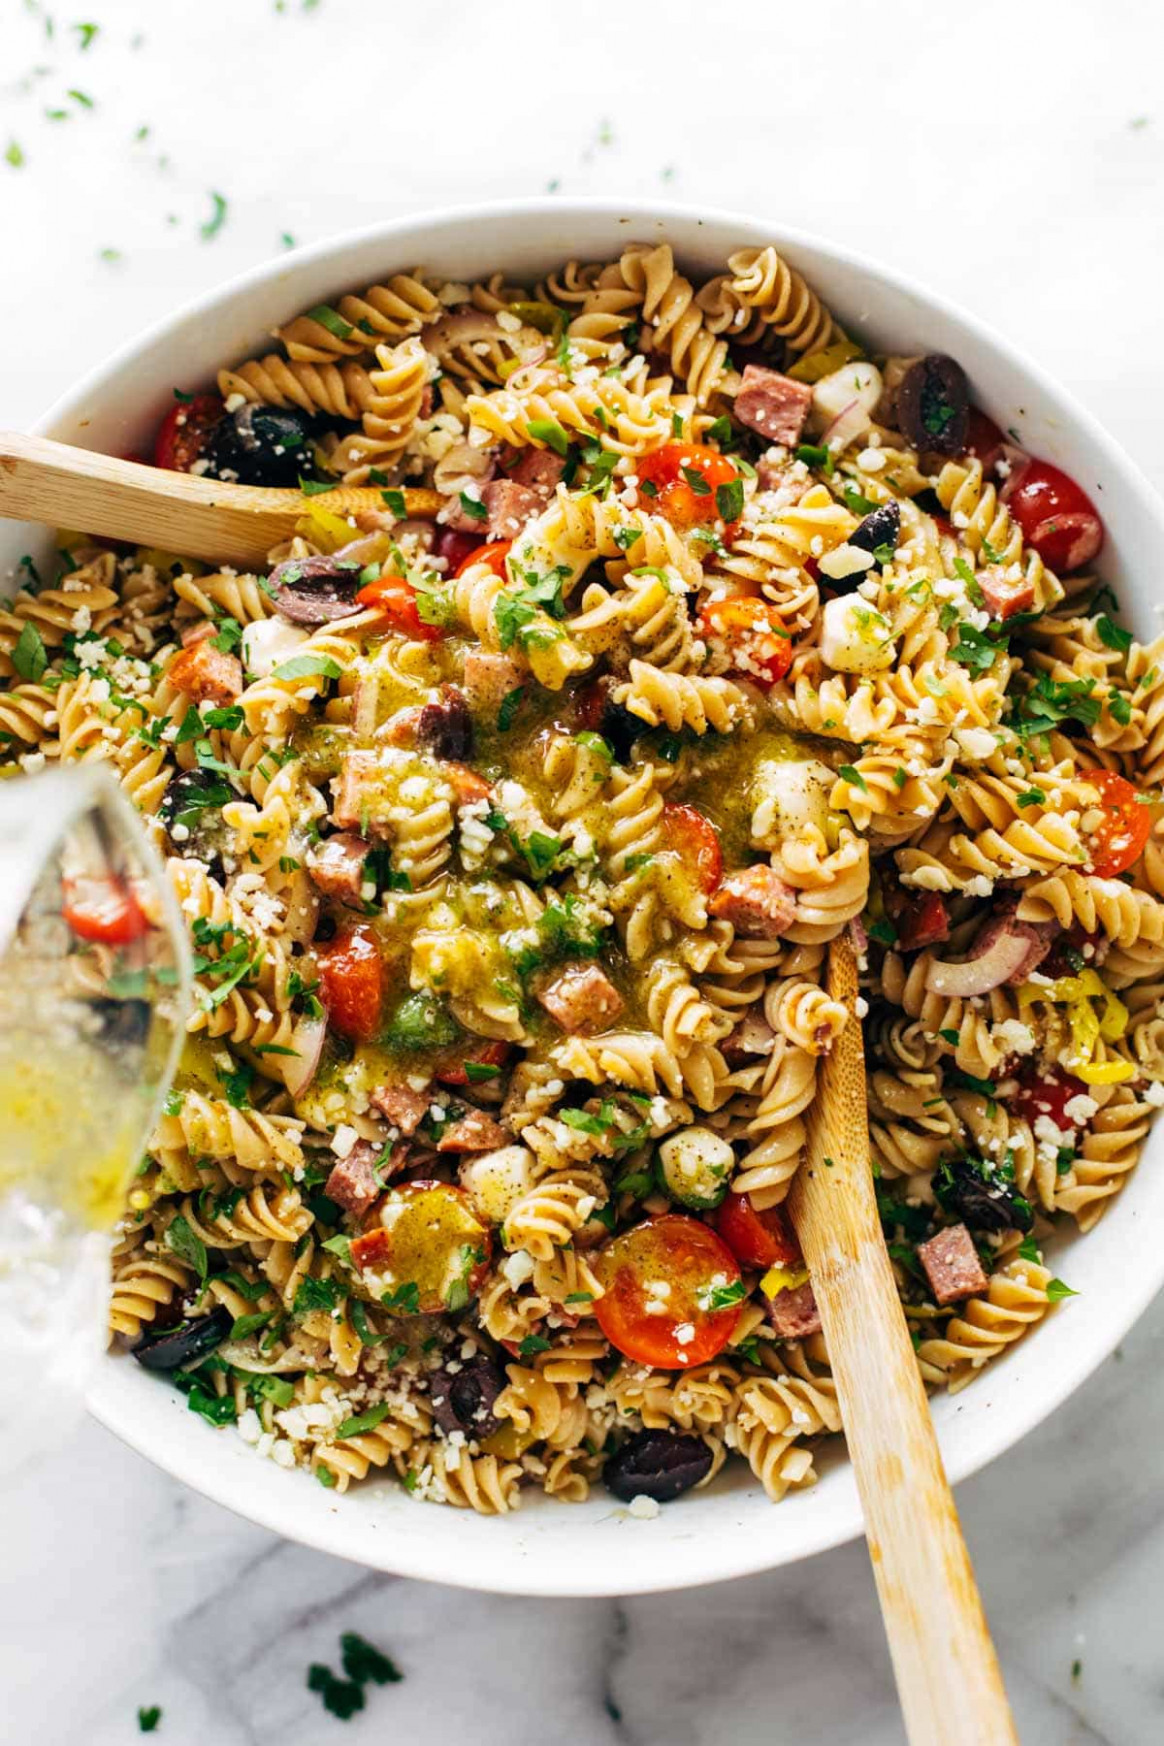 The Best Easy Italian Pasta Salad Recipe - Pinch of Yum